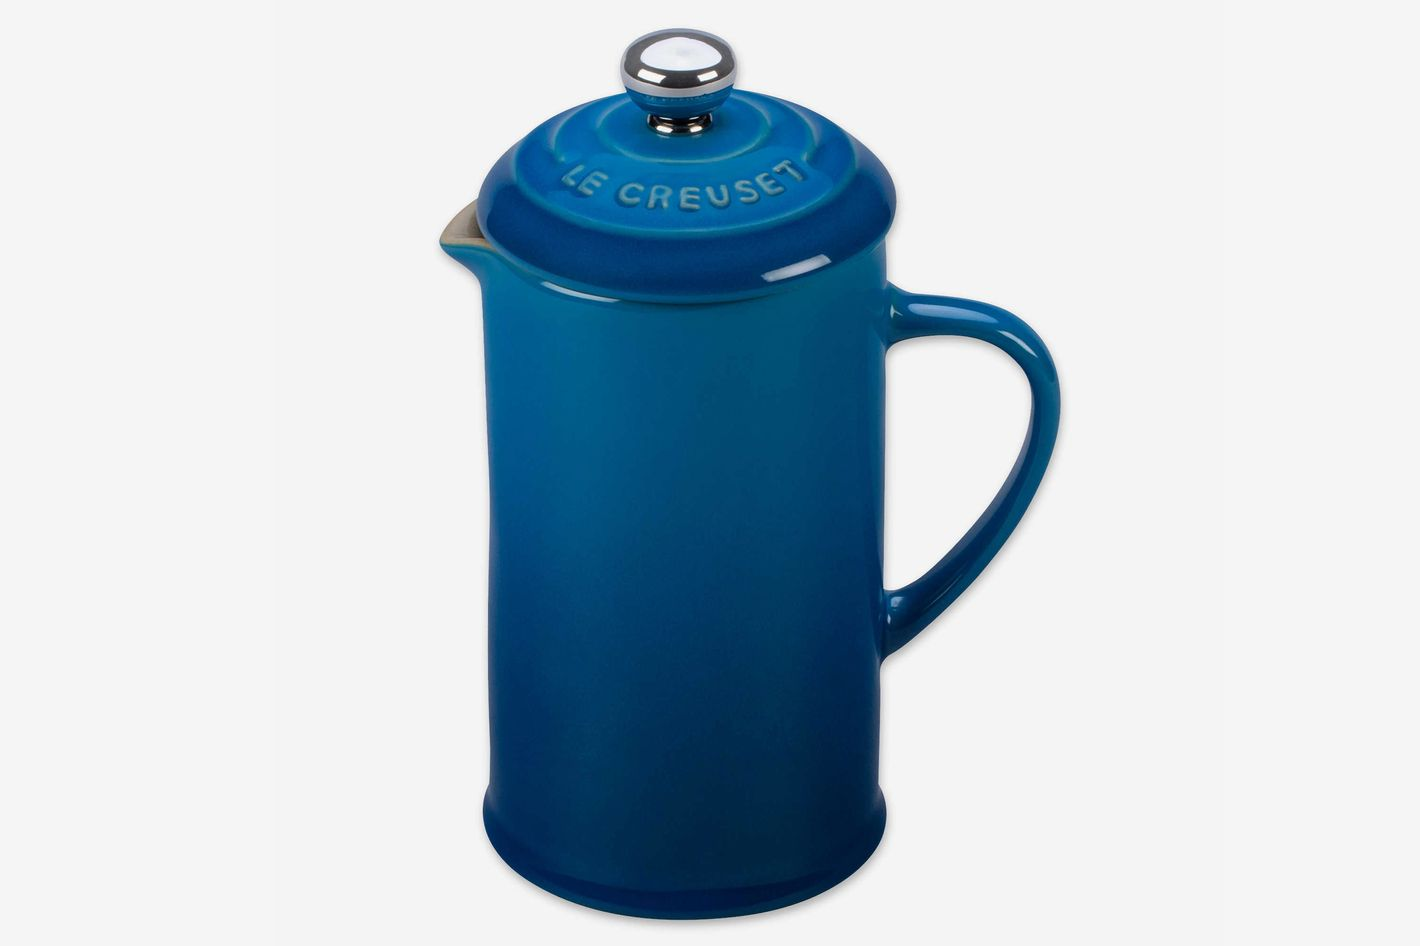 Le Creuset 12 oz. French Press in Marine